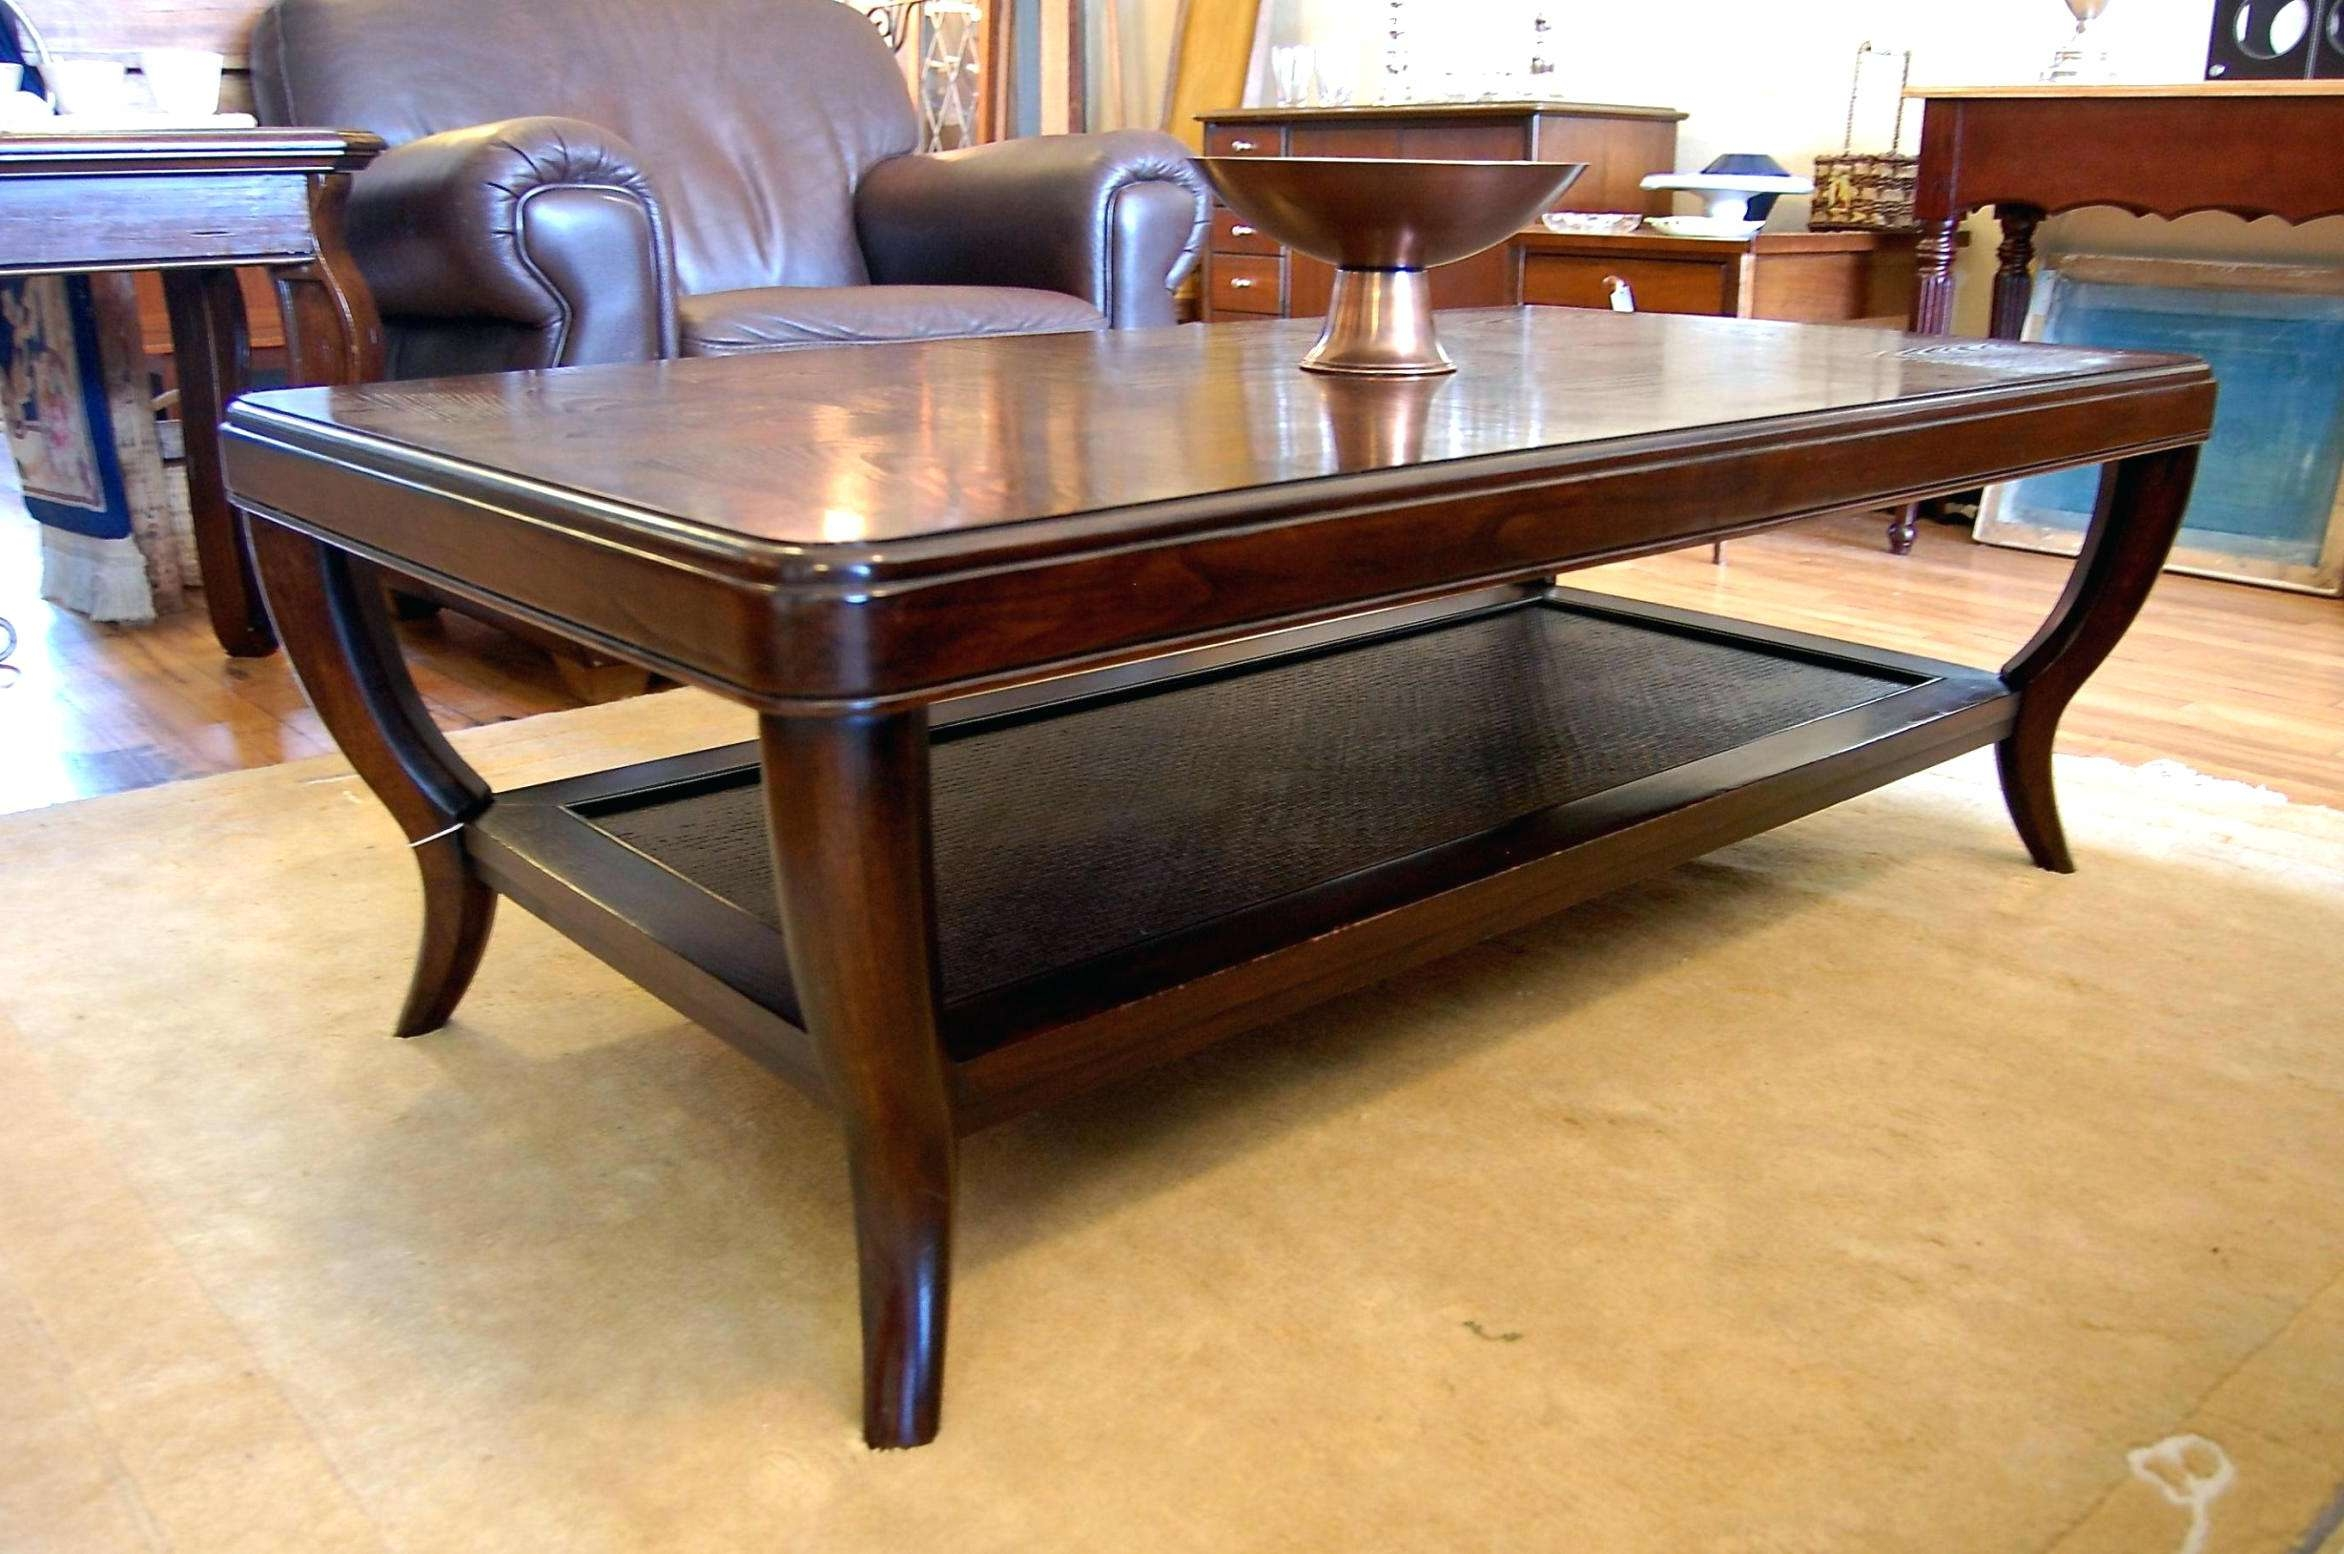 Engaging Large Wood Coffee Table Best Collection Of Square Dark Intended For Current Huge Coffee Tables (View 3 of 20)